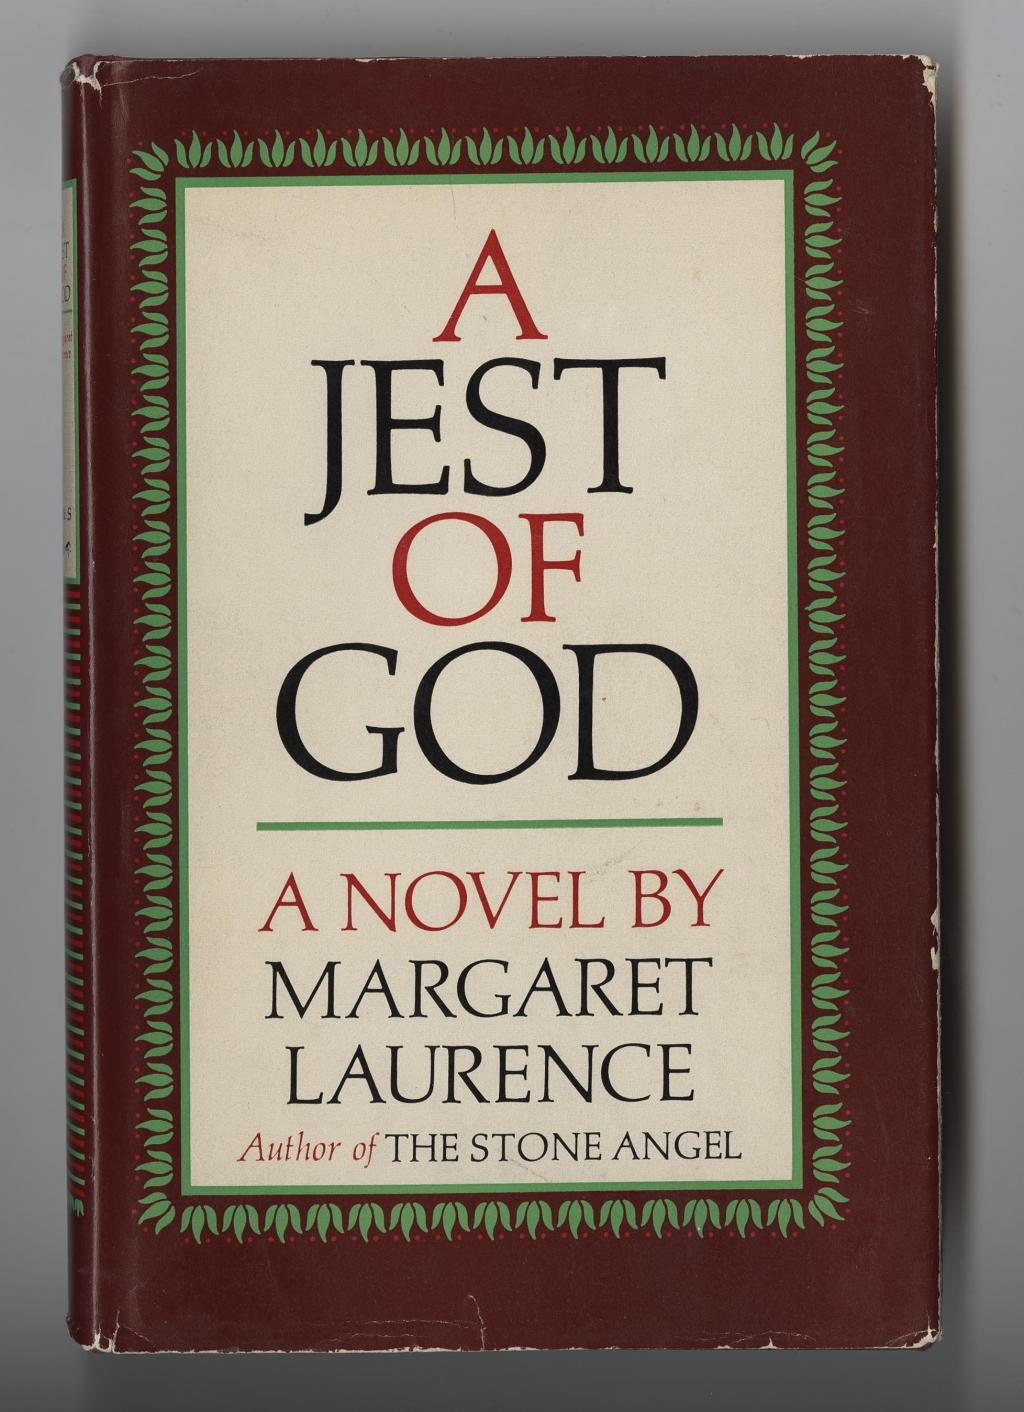 the theme of the routine of life in a jest of god by margaret laurence and the book of eve by consta Cash advance loans online online payday advance quick cash payday advance ' ชื่อ : wcrernaf.